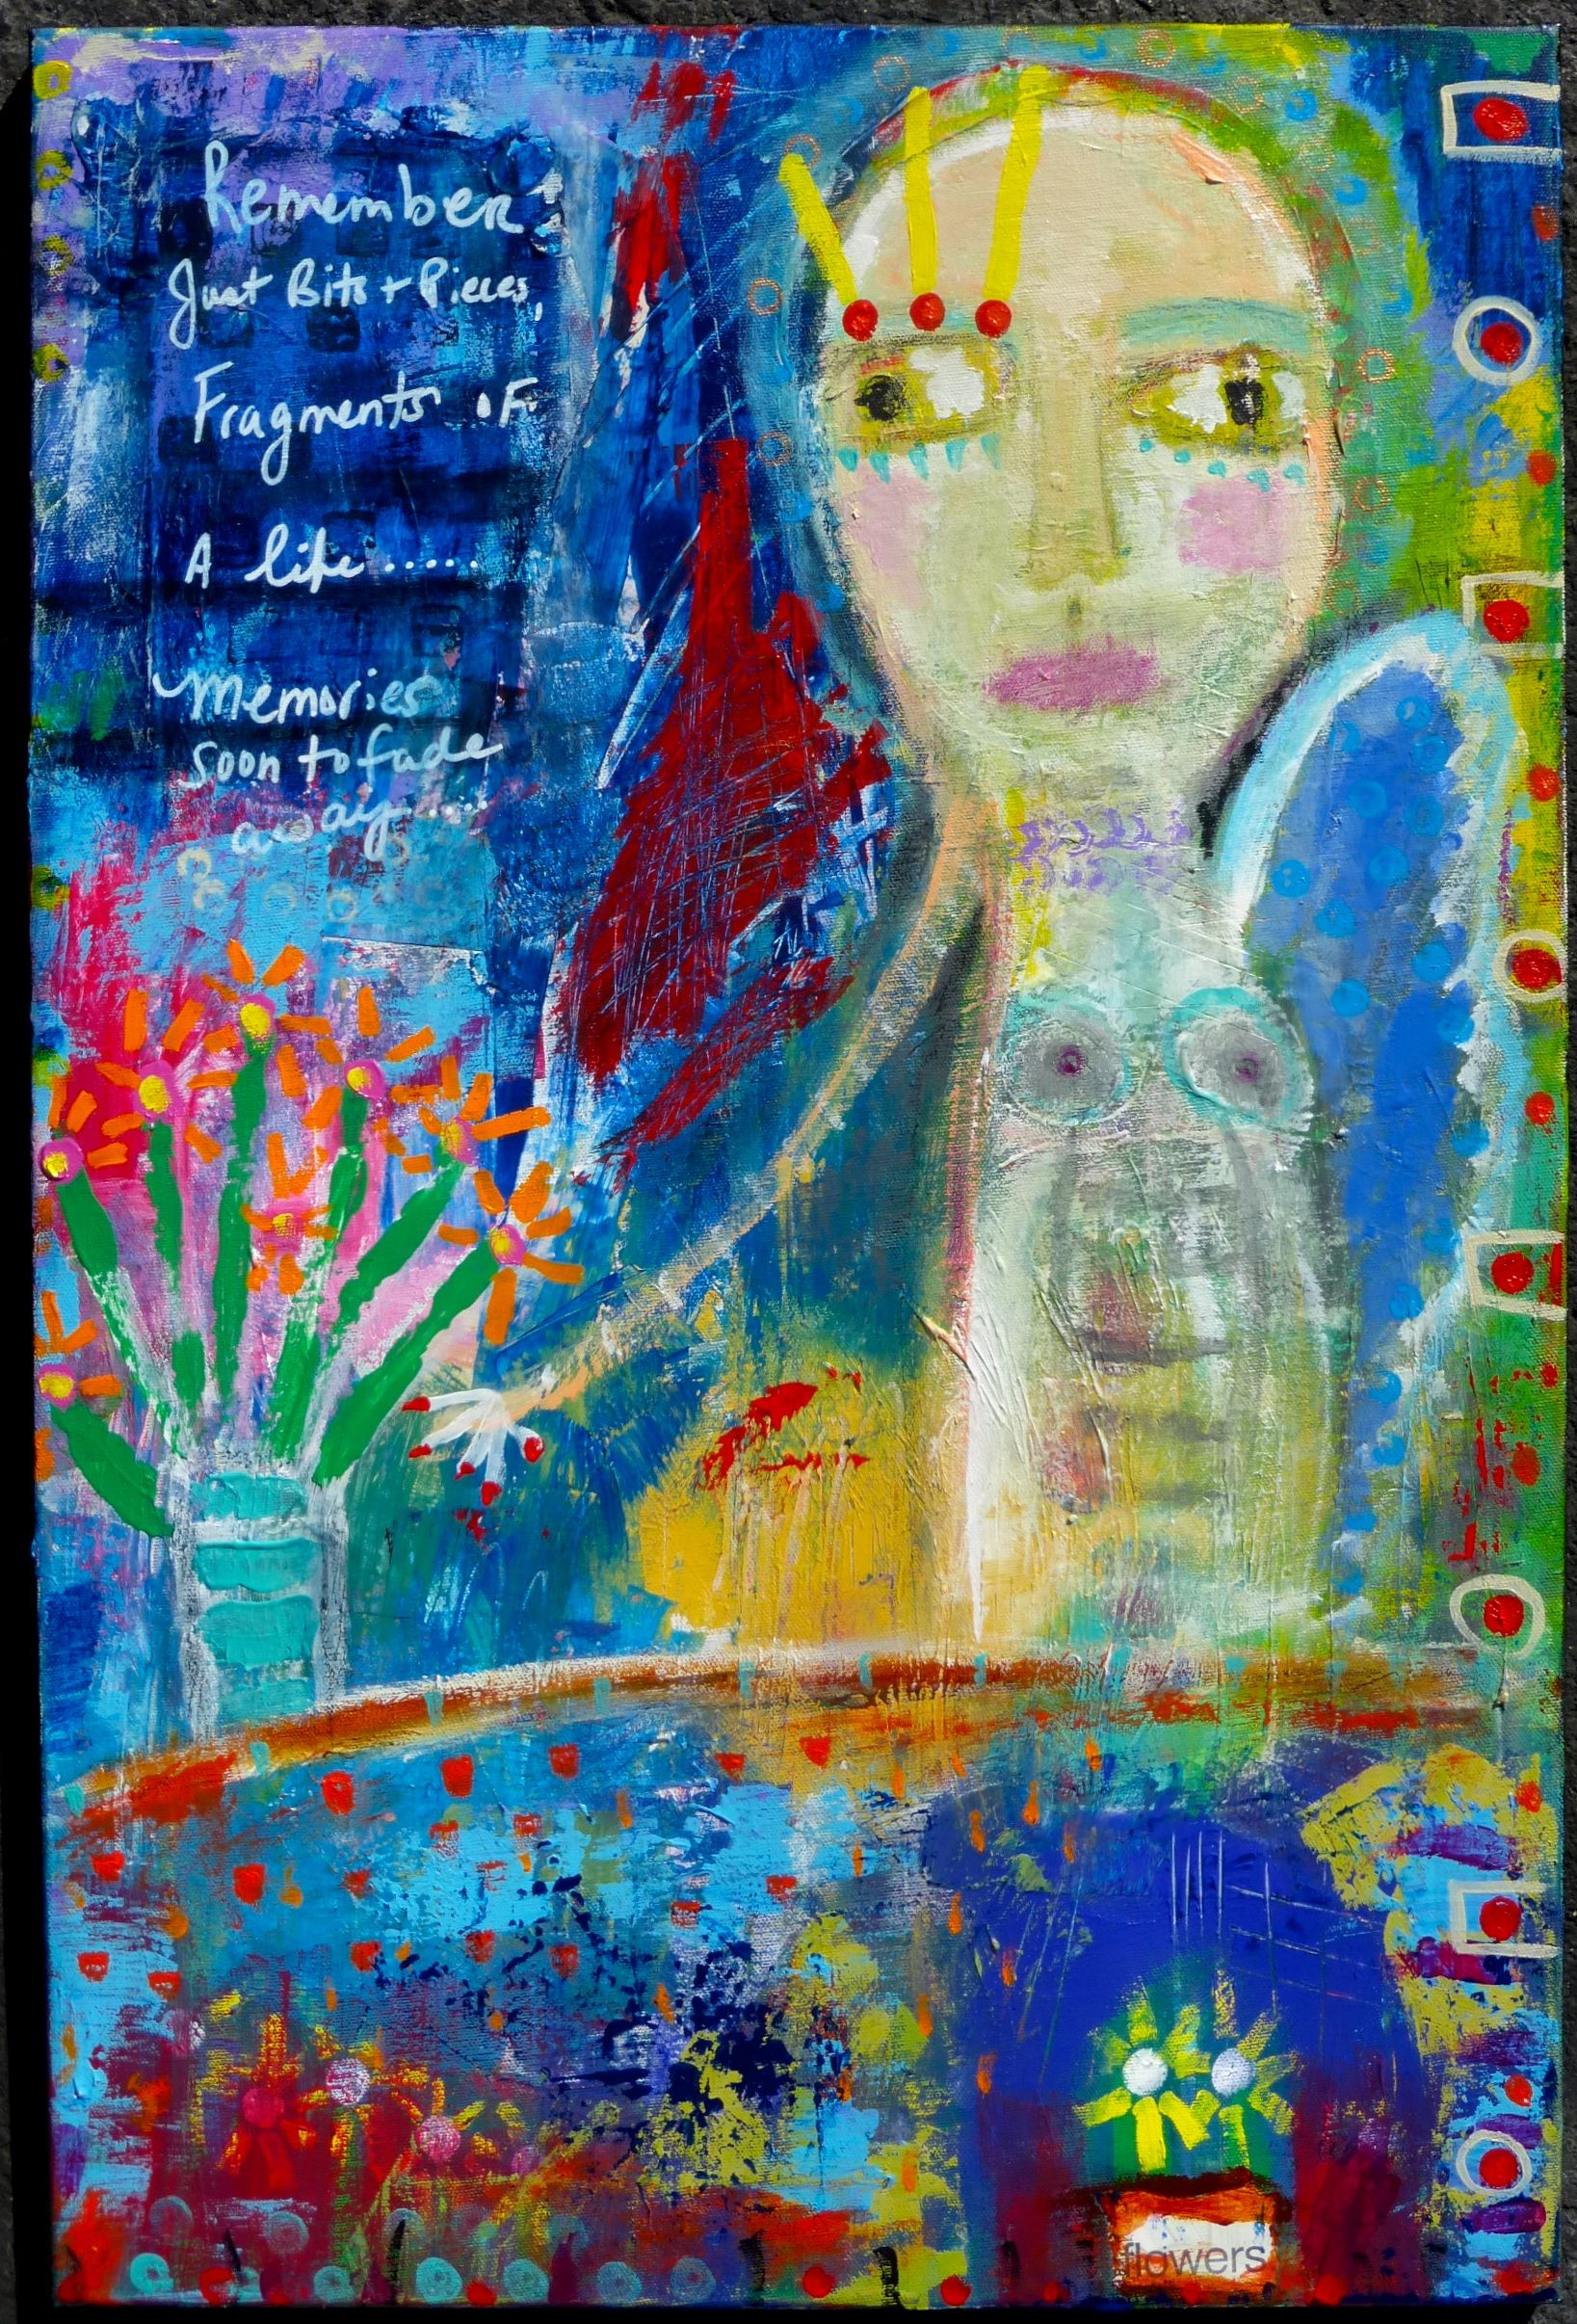 """""""Fragments"""" an original one of a kind mixed media painting by Tracey Ann Finley #outsiderart"""